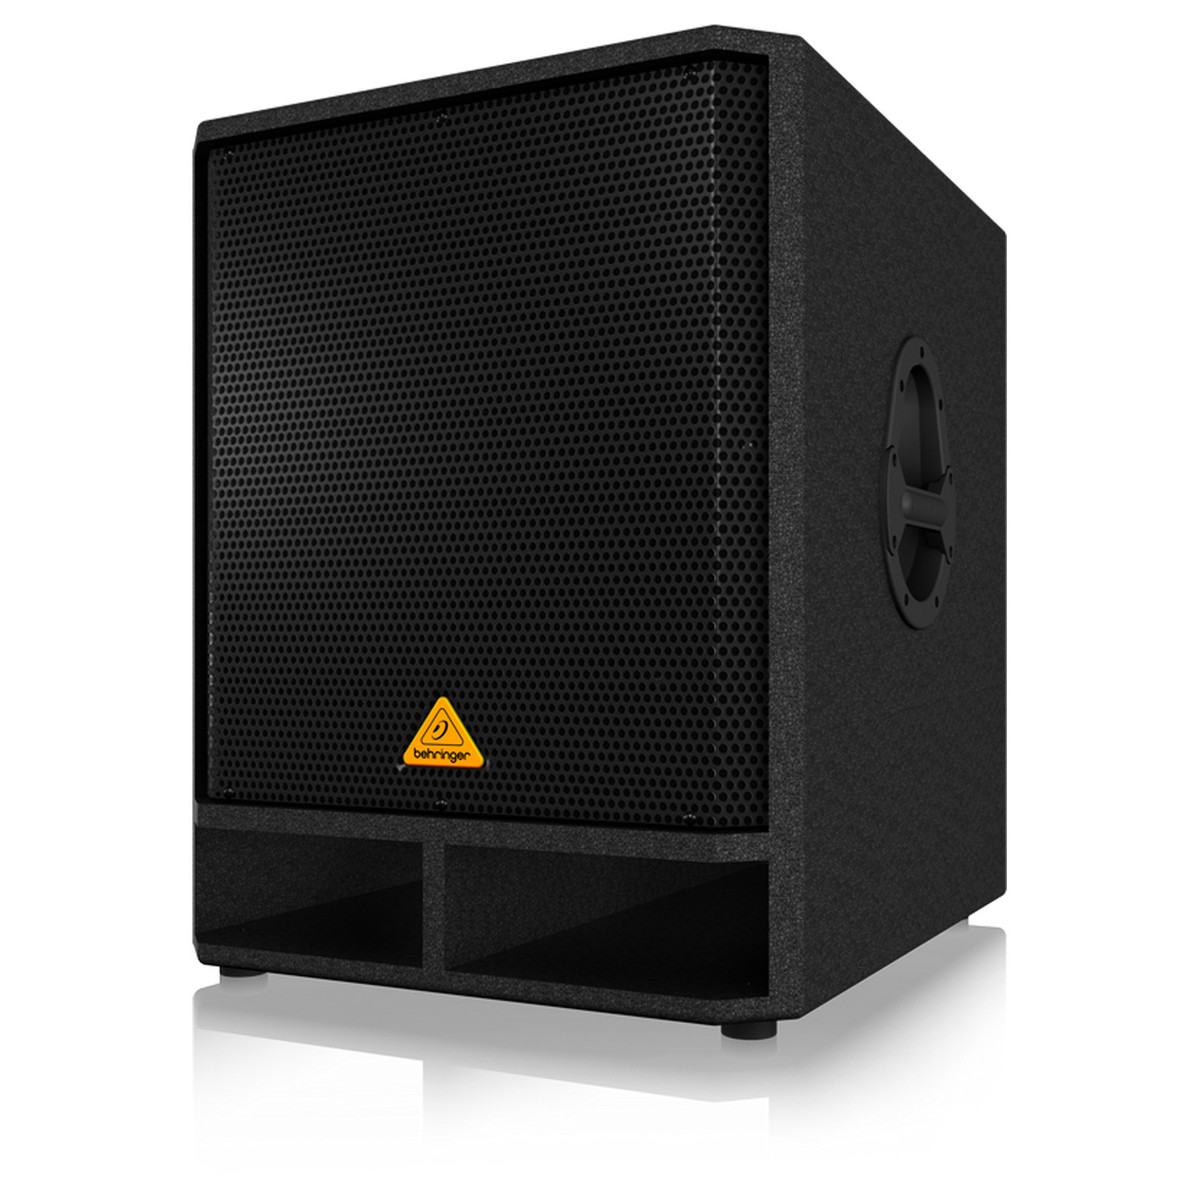 behringer eurolive vp1800s professional 1600w 18 pa subwoofer at. Black Bedroom Furniture Sets. Home Design Ideas